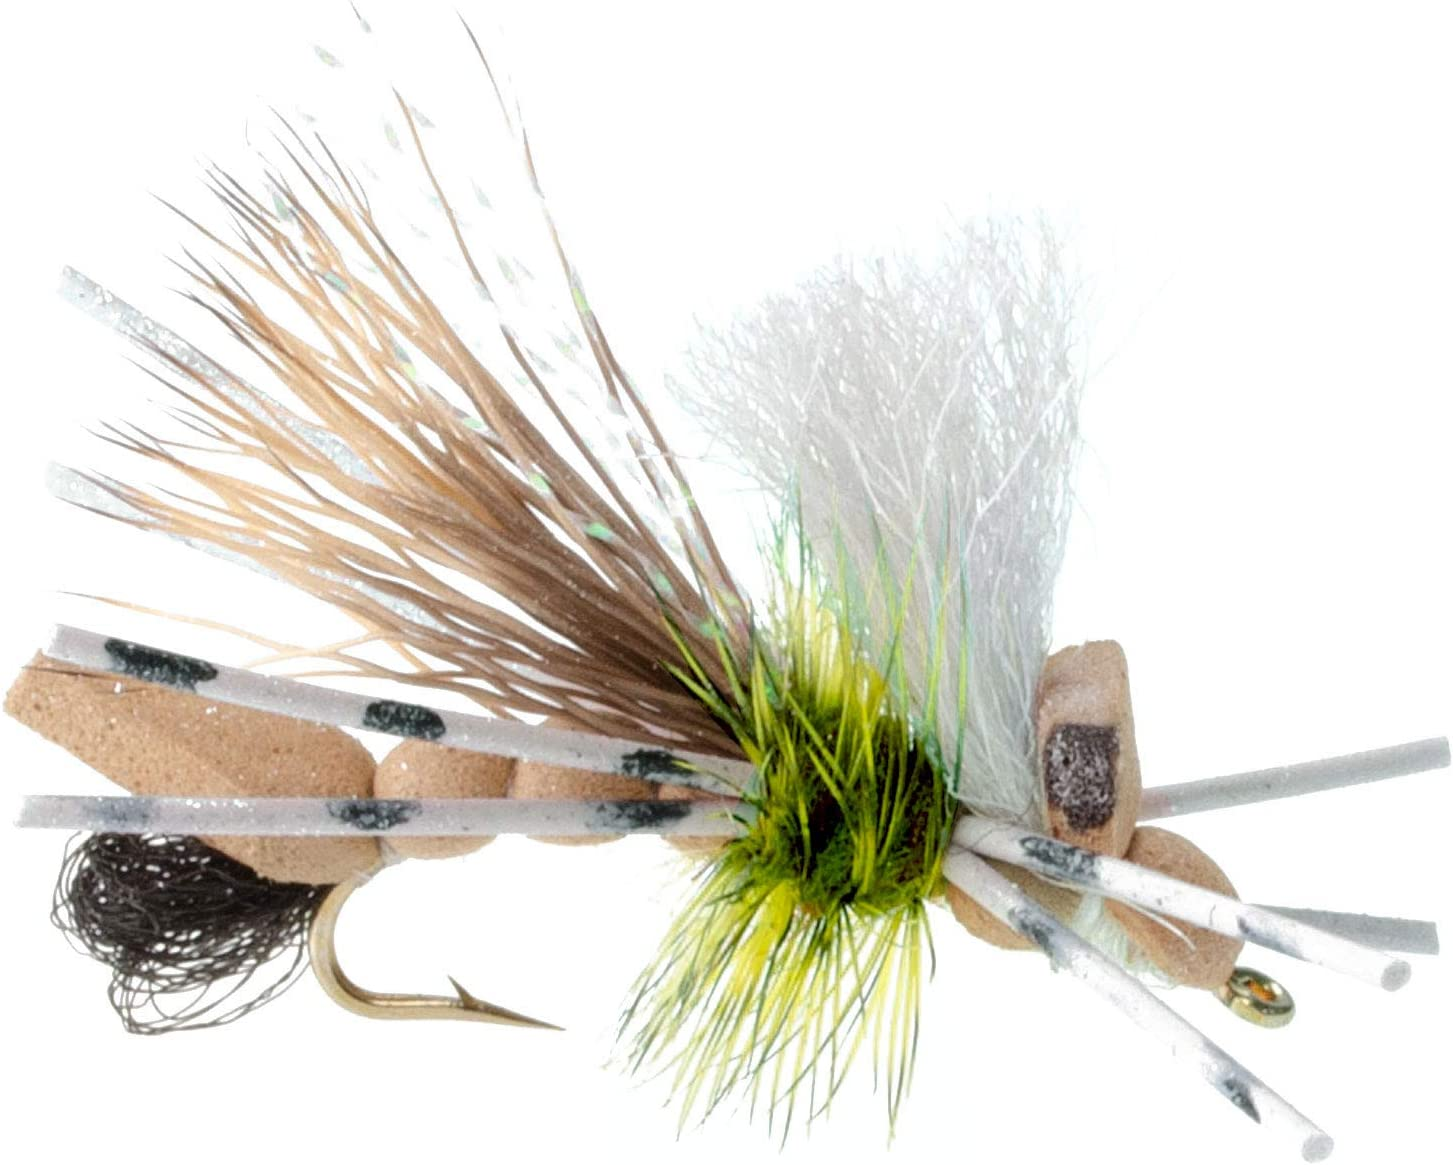 The Fly Fishing Place Water Trout Hopper High Floating Foam Grasshopper Dry Fly Fishing Fly Hopper Dropper Indicator Fly Hook Size 10 4 Flies